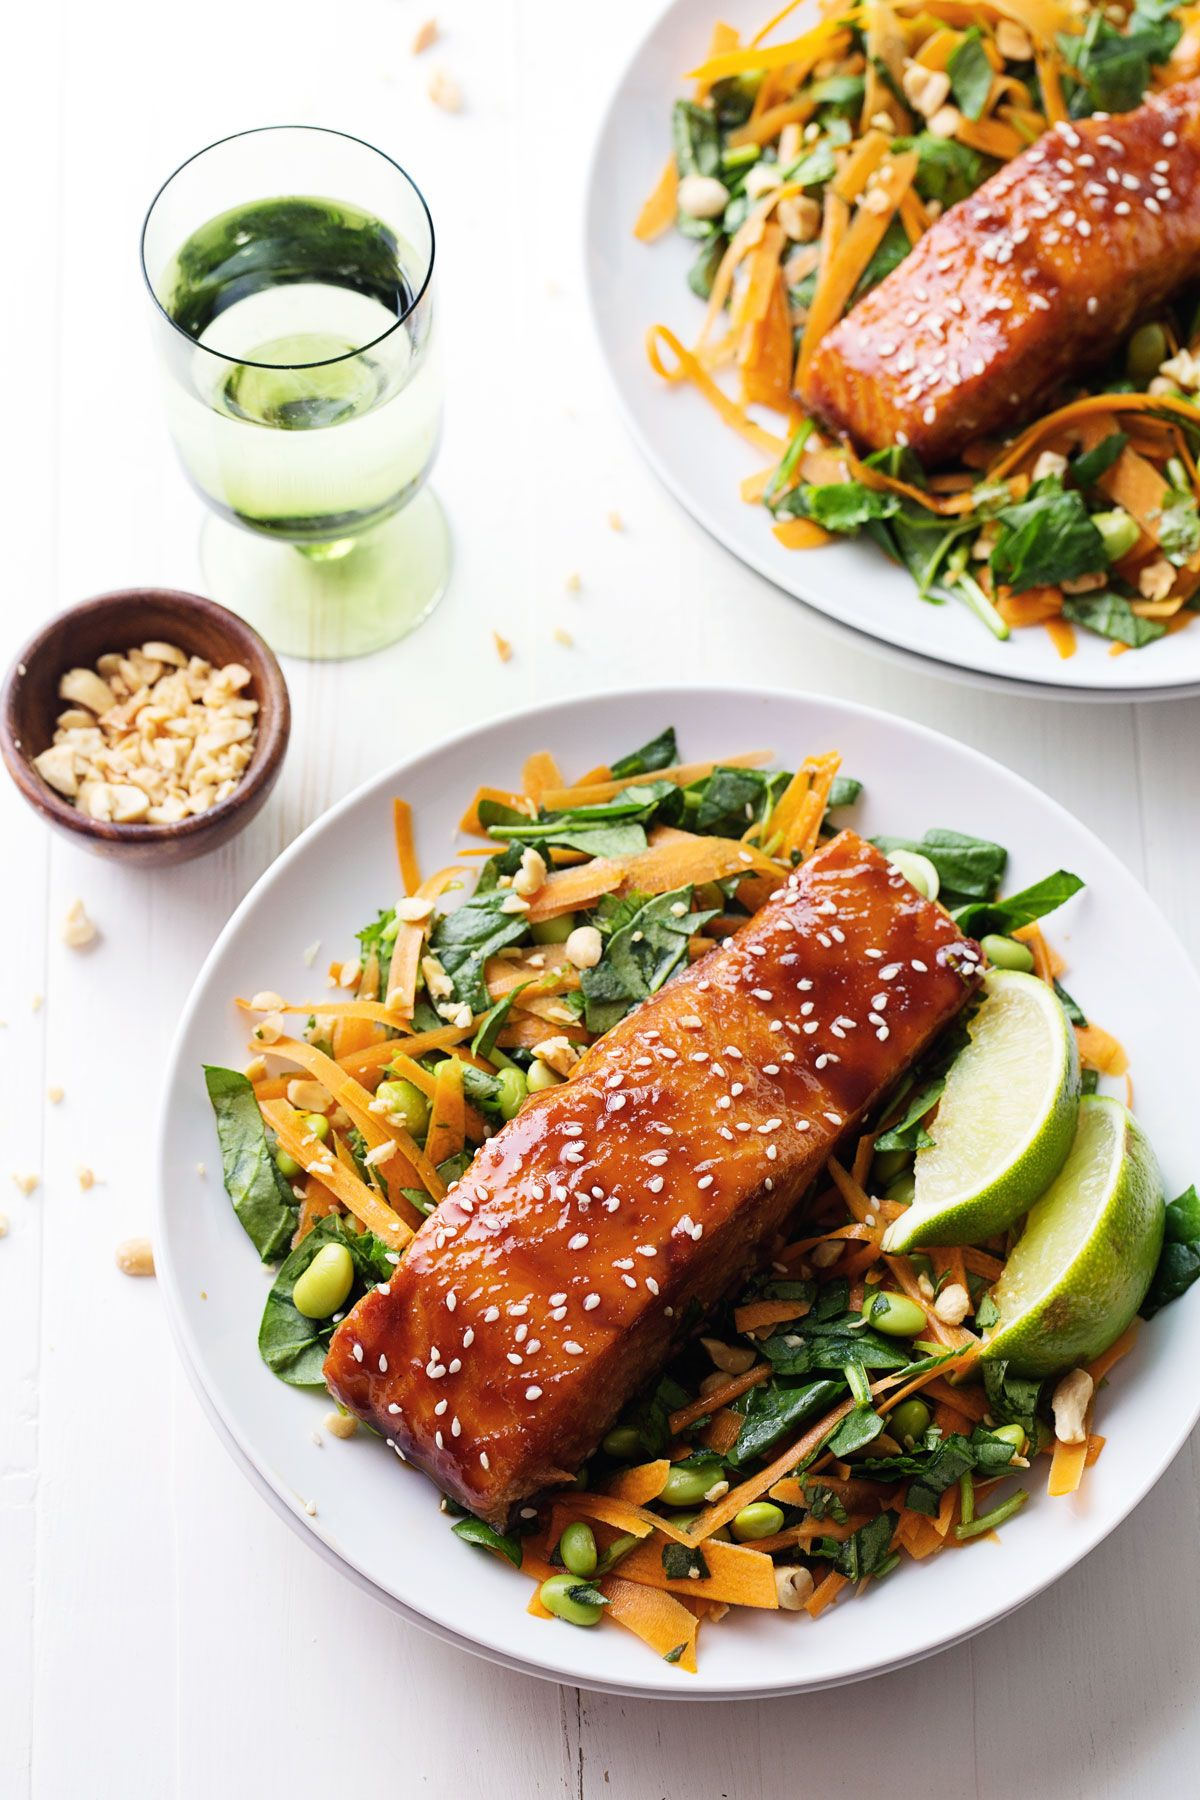 Simple Hoisin Glazed Salmon - a super easy homemade glaze makes this salmon extra yummy! 300 calories. | pinchofyum.com